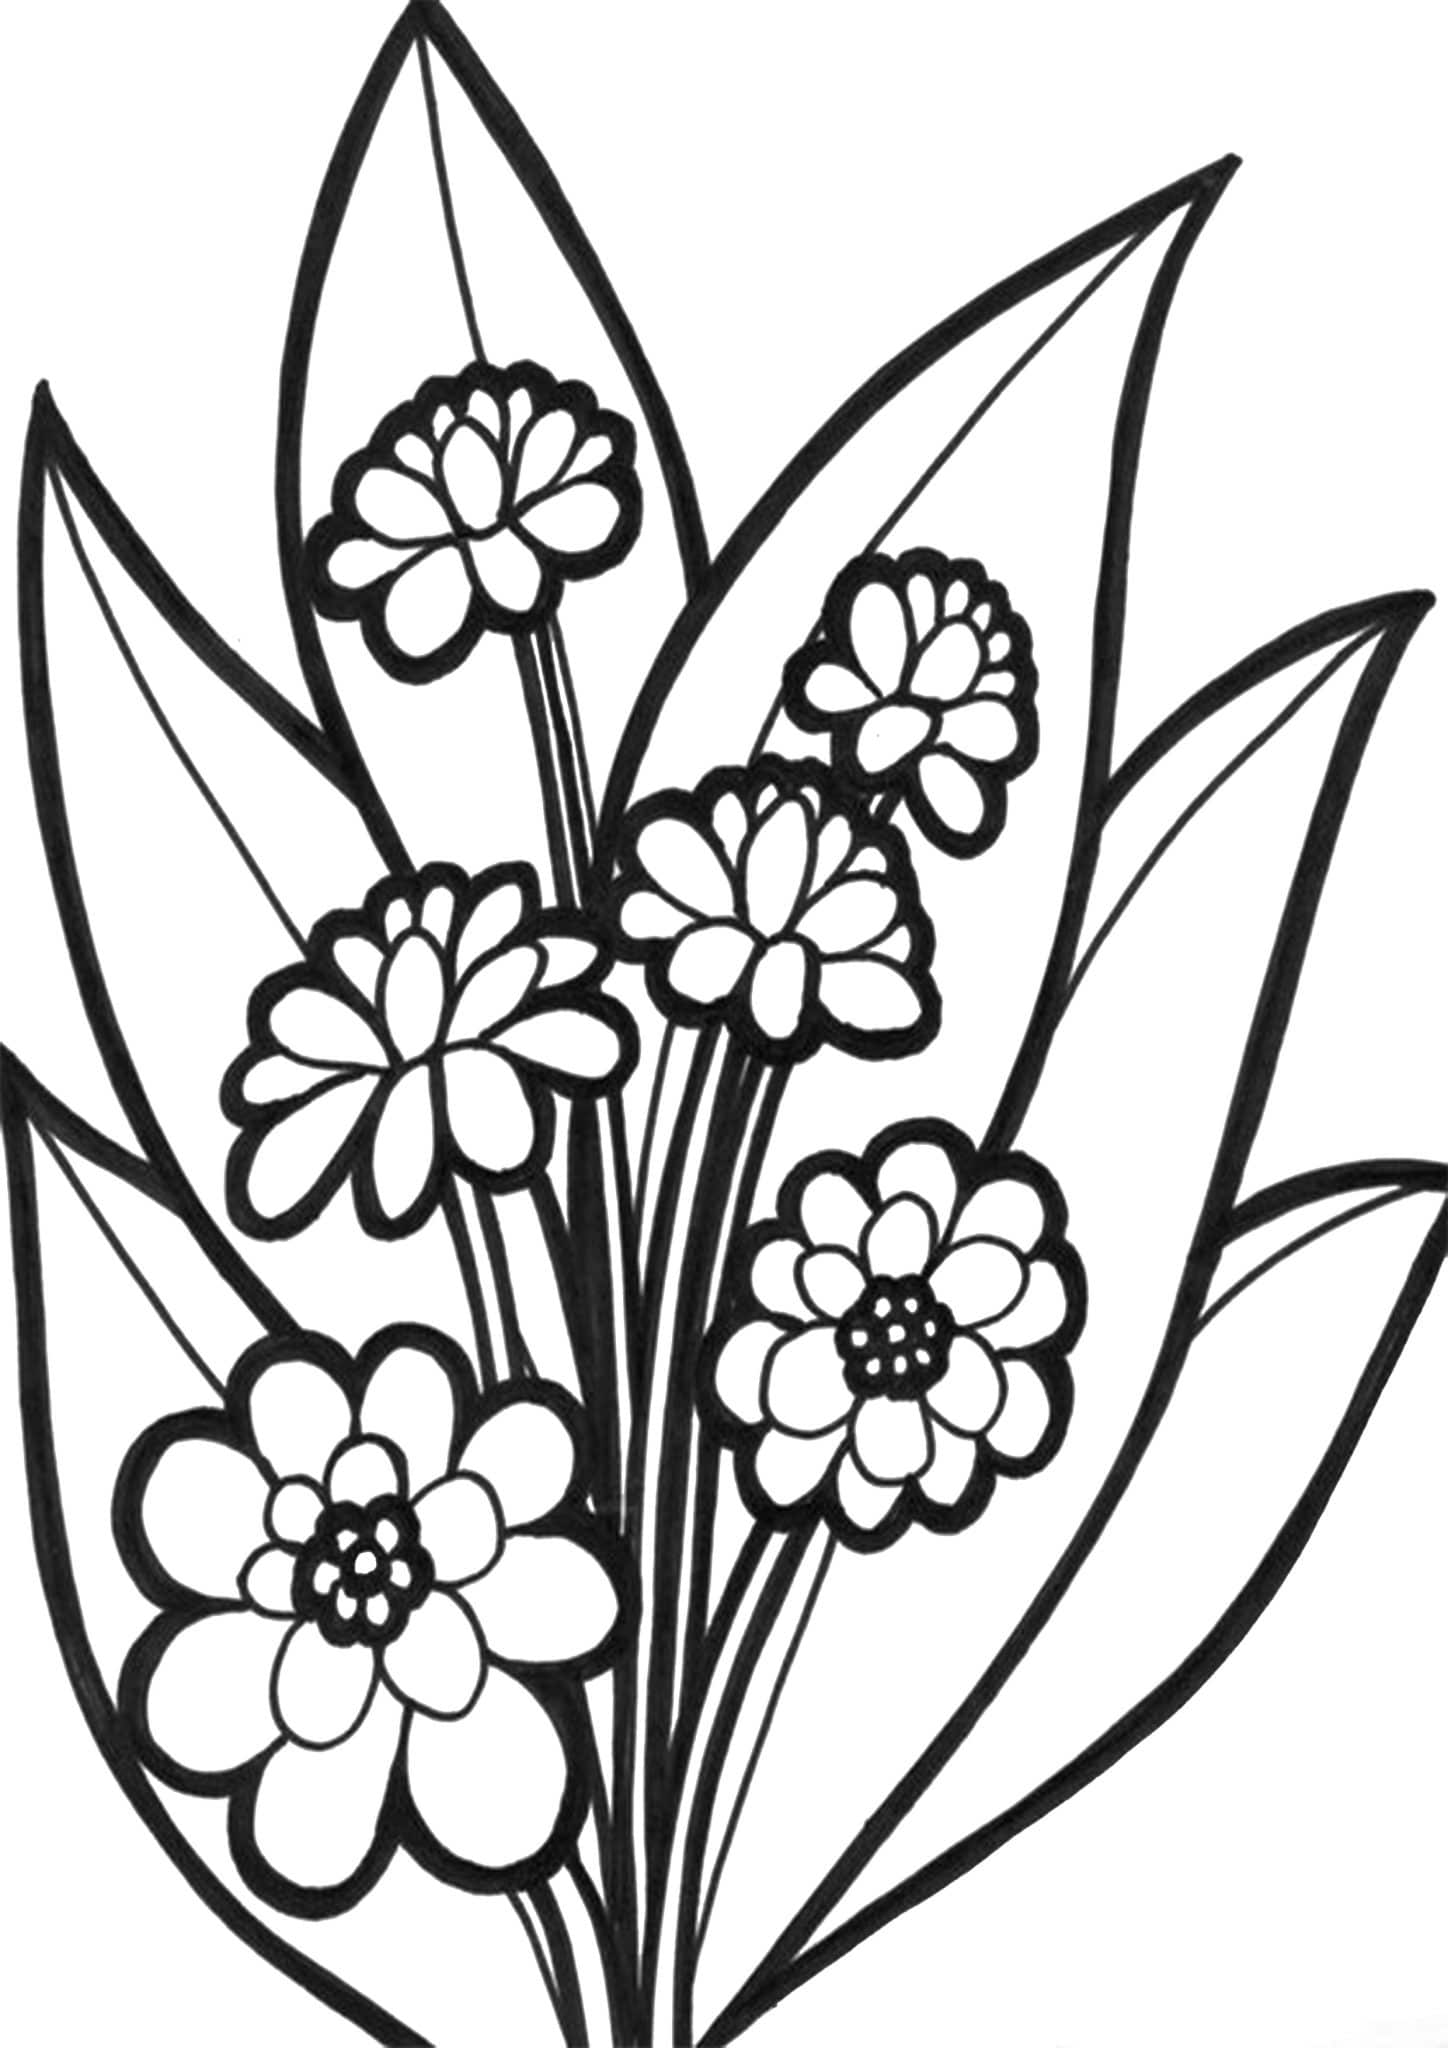 flowers coloring sheet free easy to print flower coloring pages tulamama flowers coloring sheet